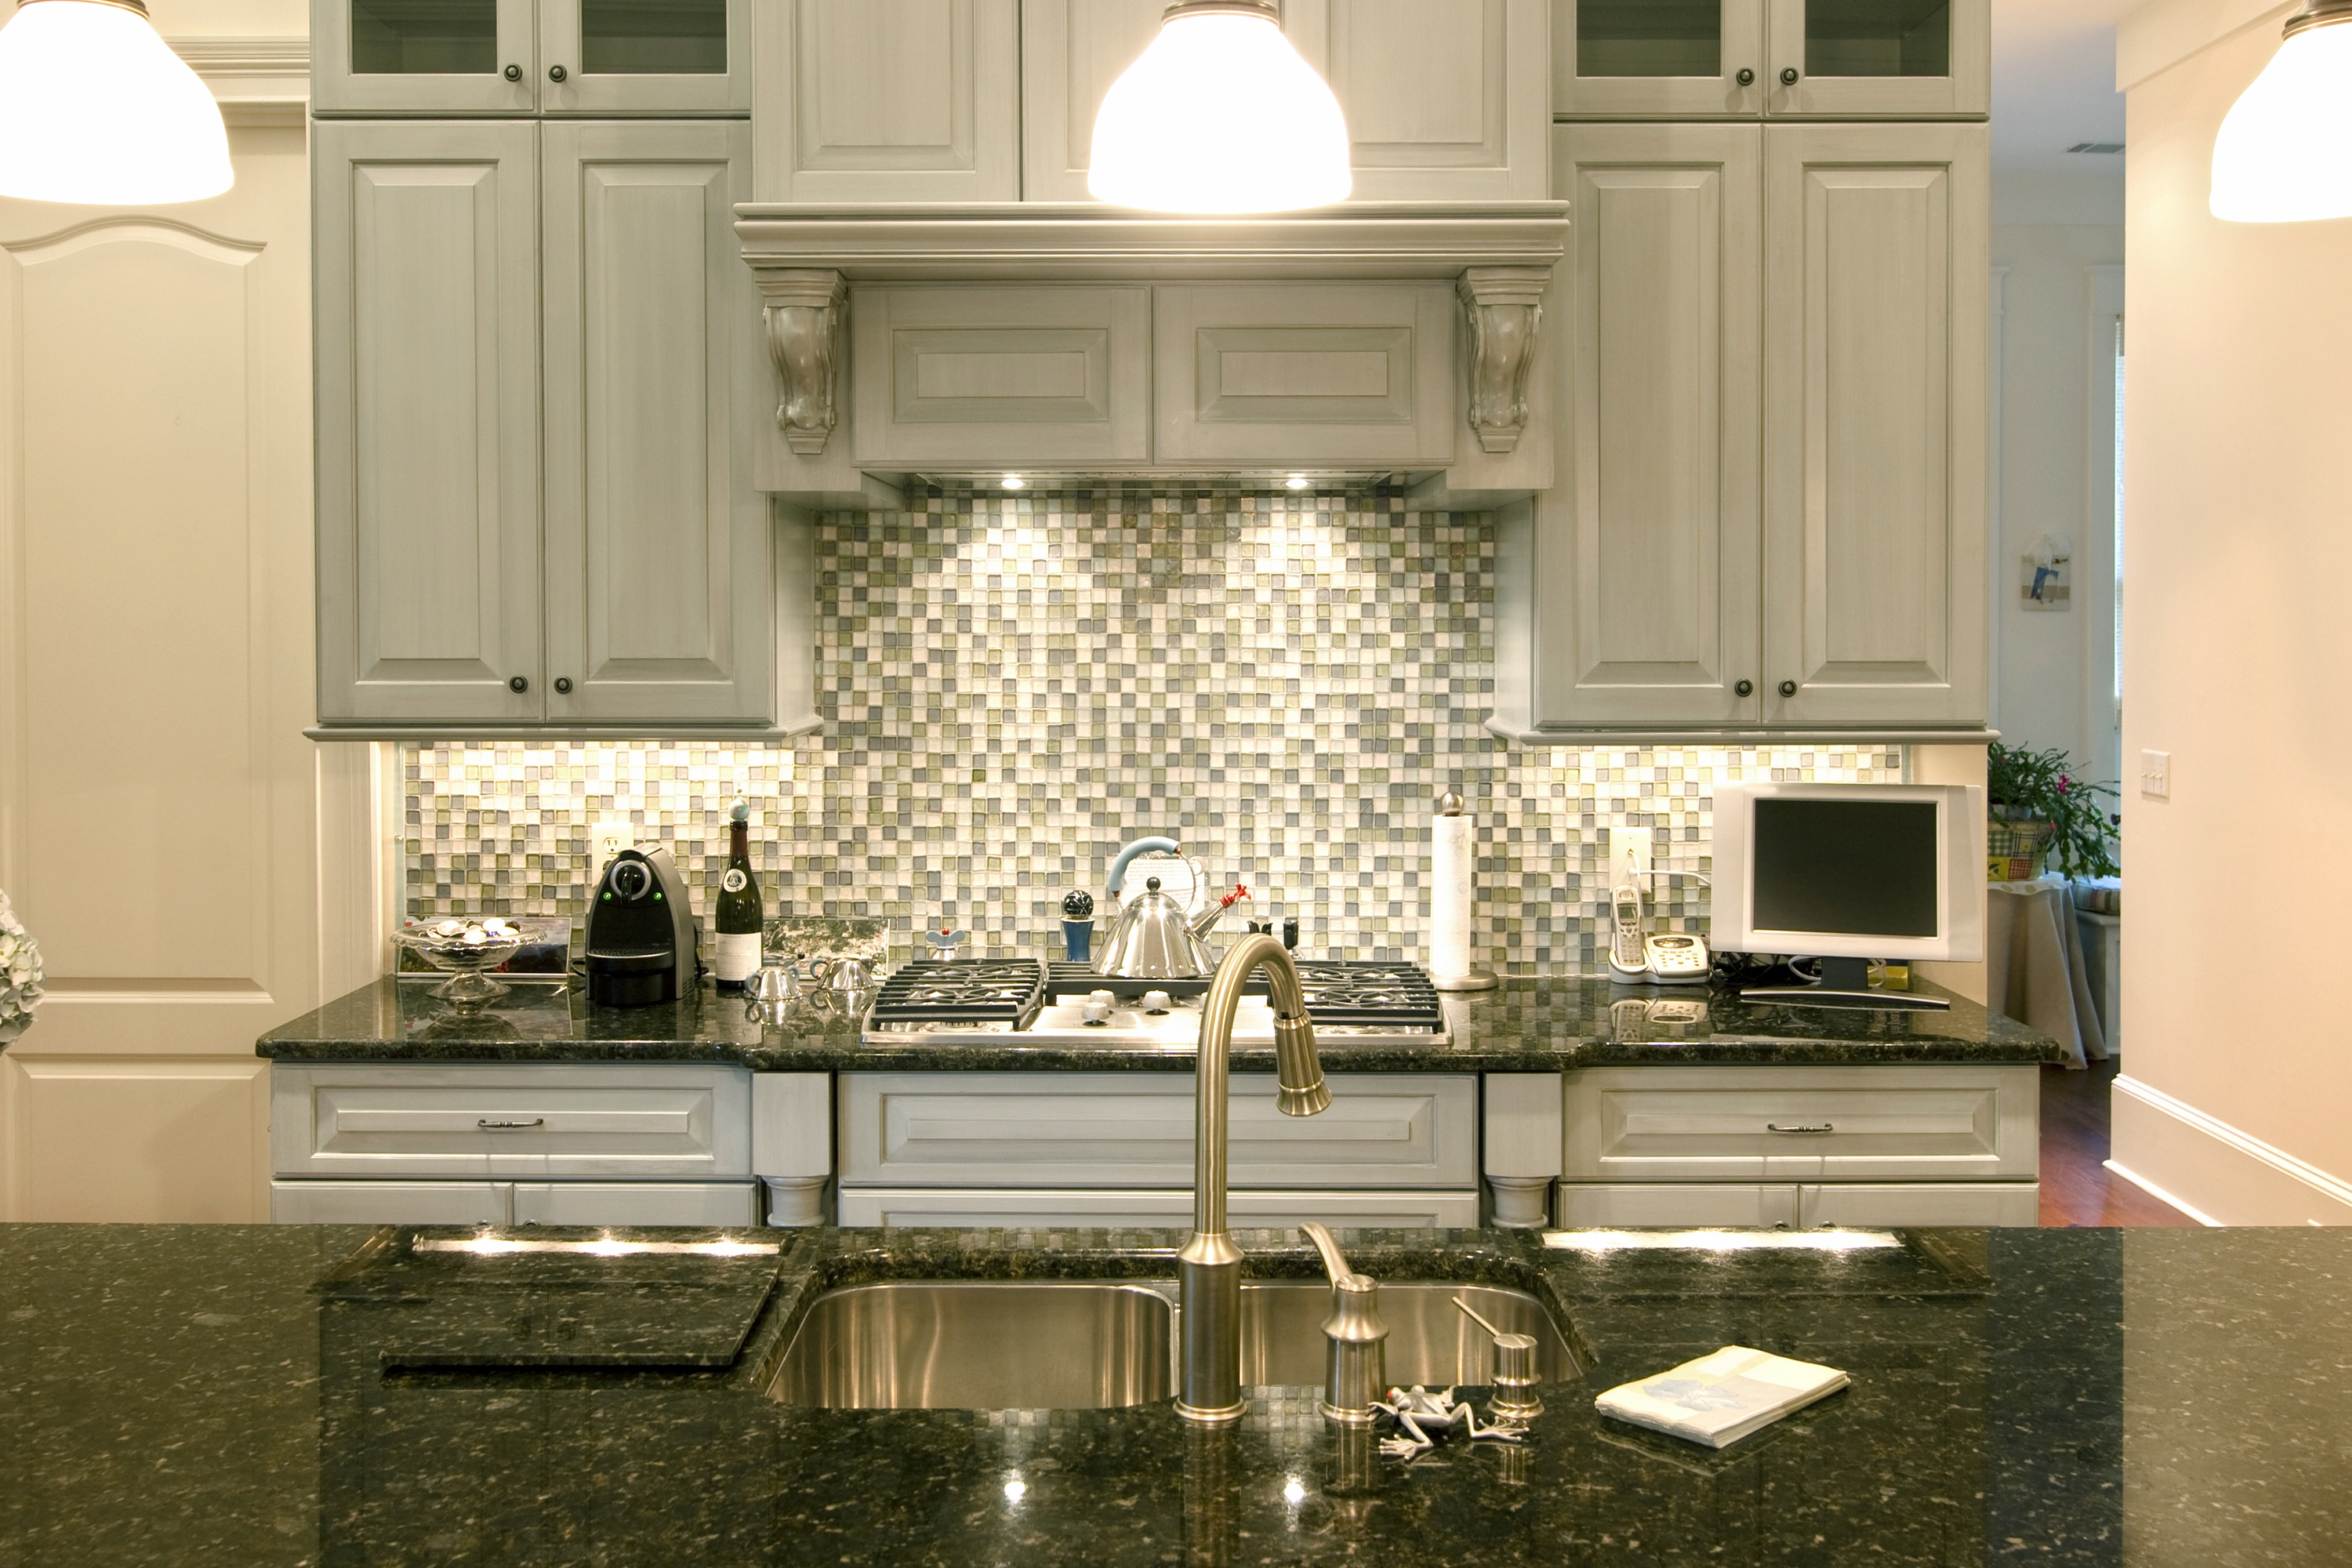 Kitchen Cabinet Color Ideas With Black Granitebedroom backsplash ideas for kitchens inexpensive black and